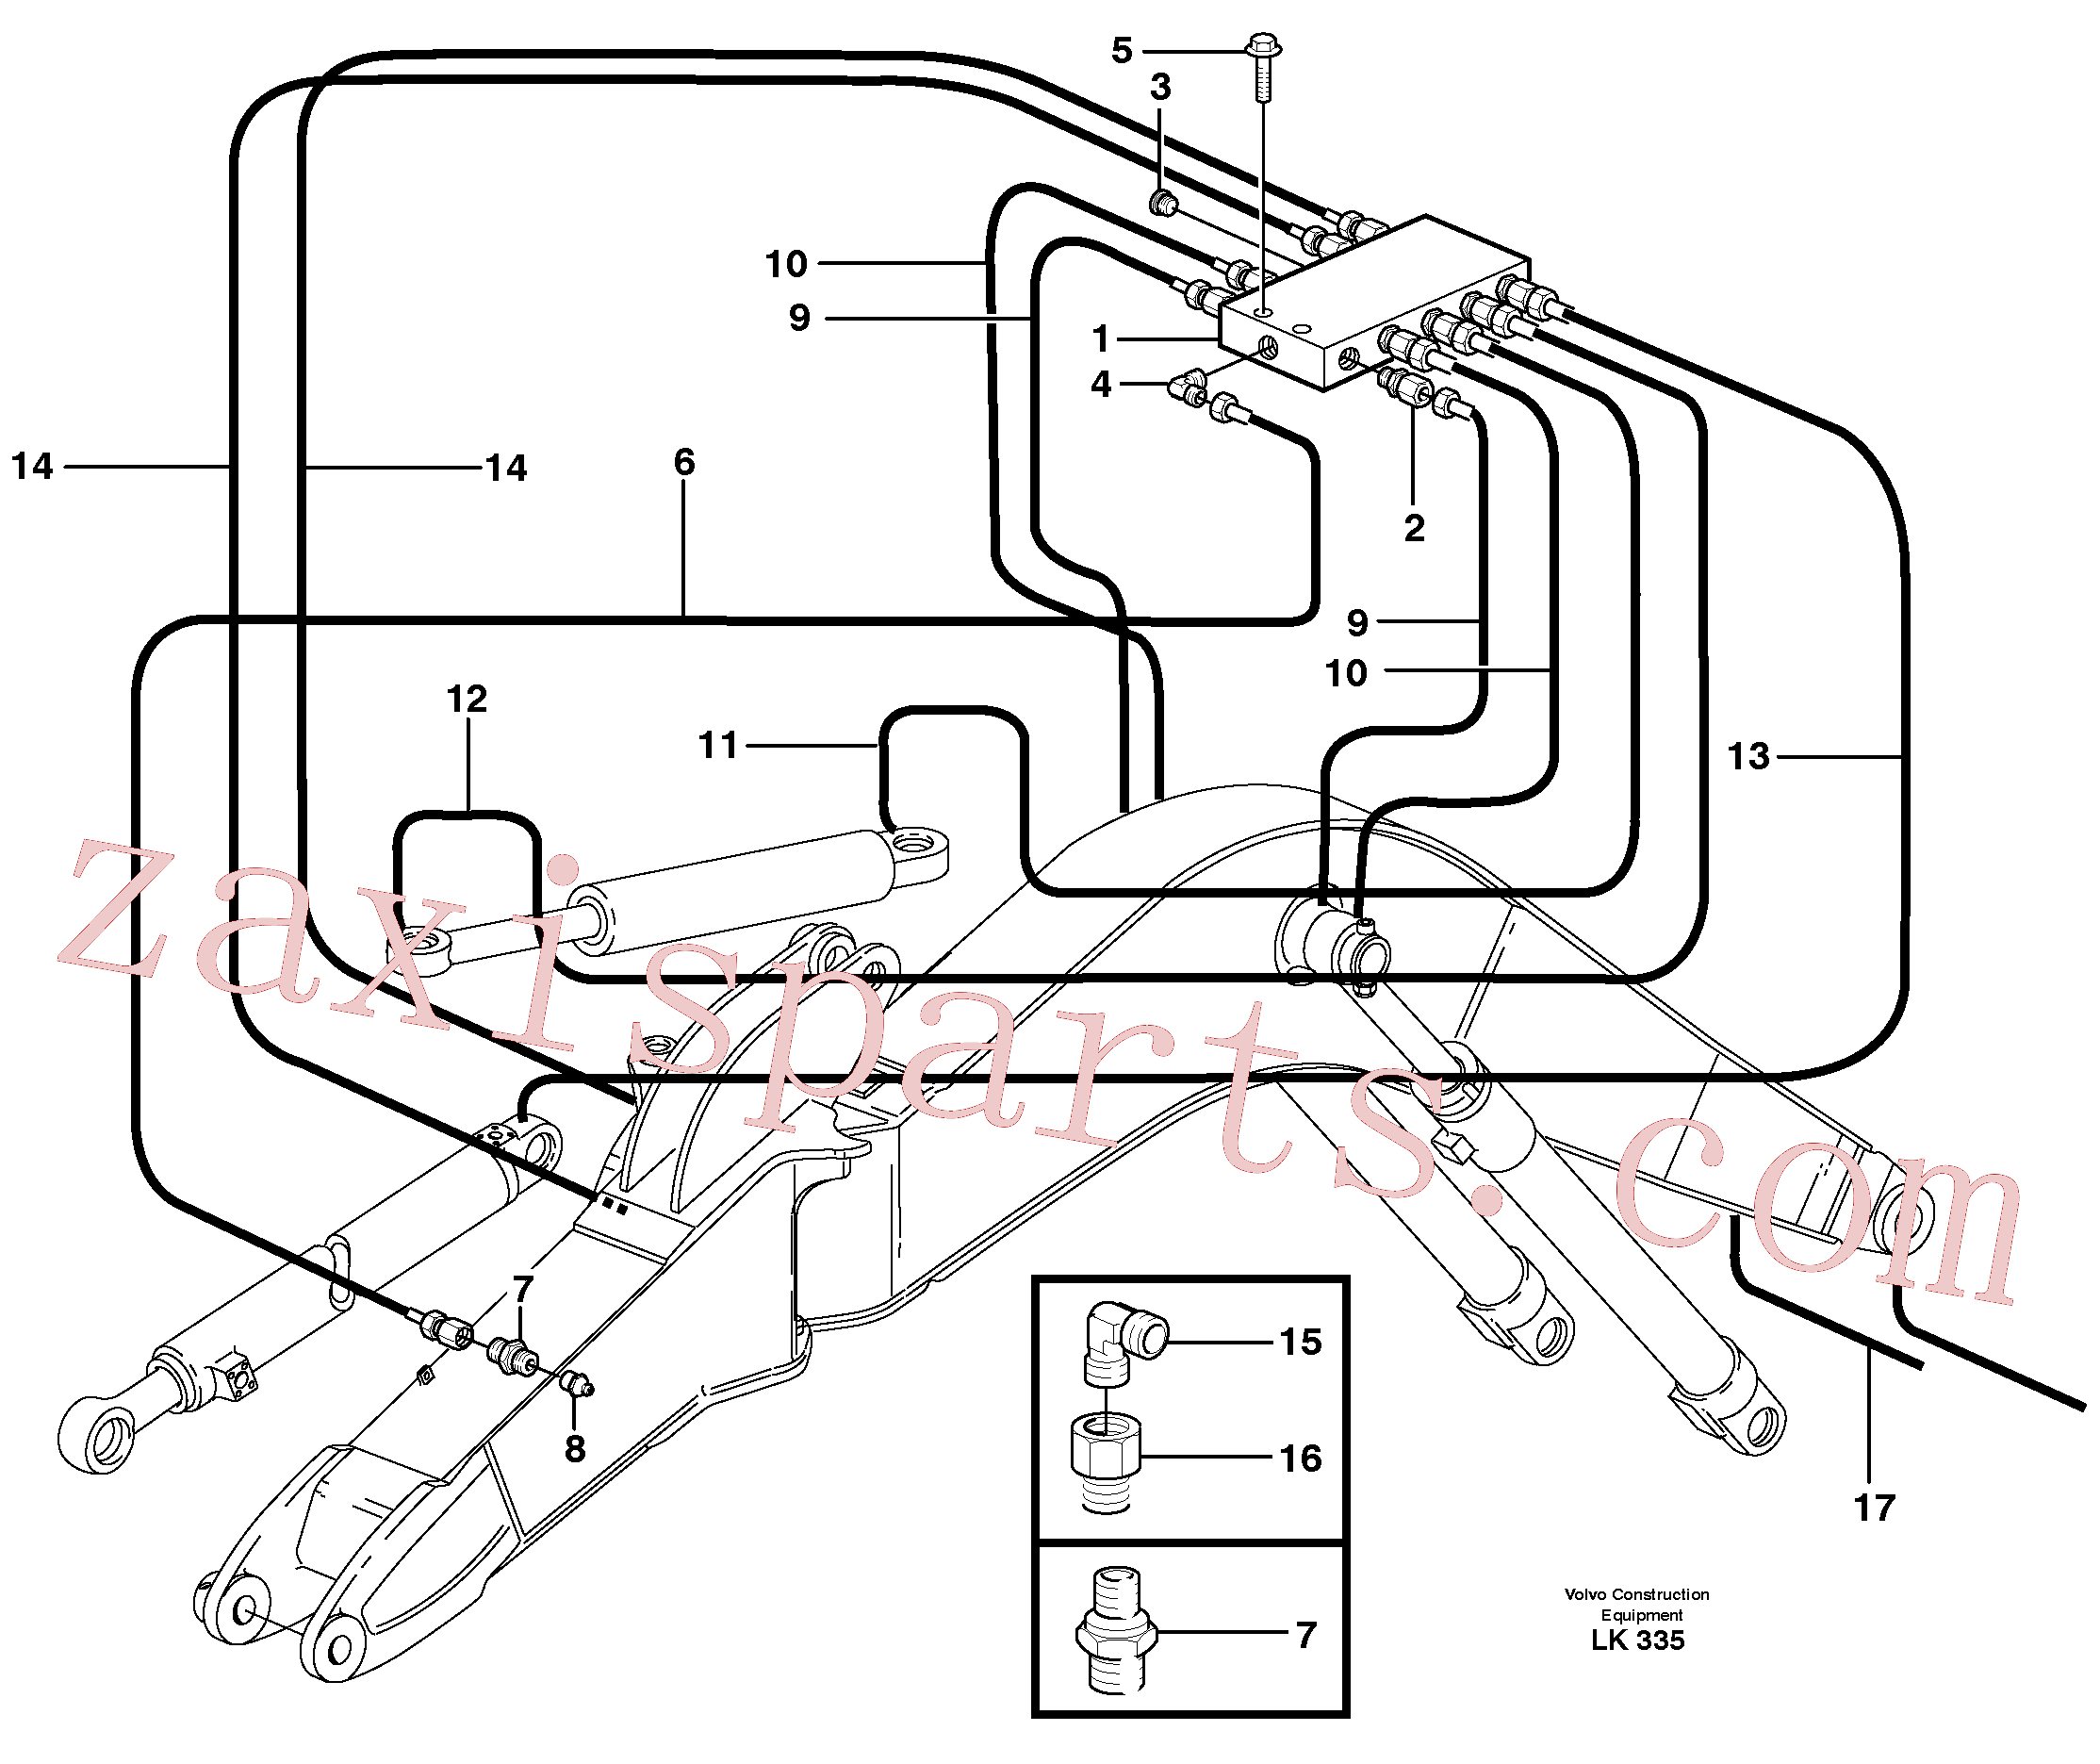 VOE11707684 for Volvo Central lubrication, boom, offset(LK335 assembly)